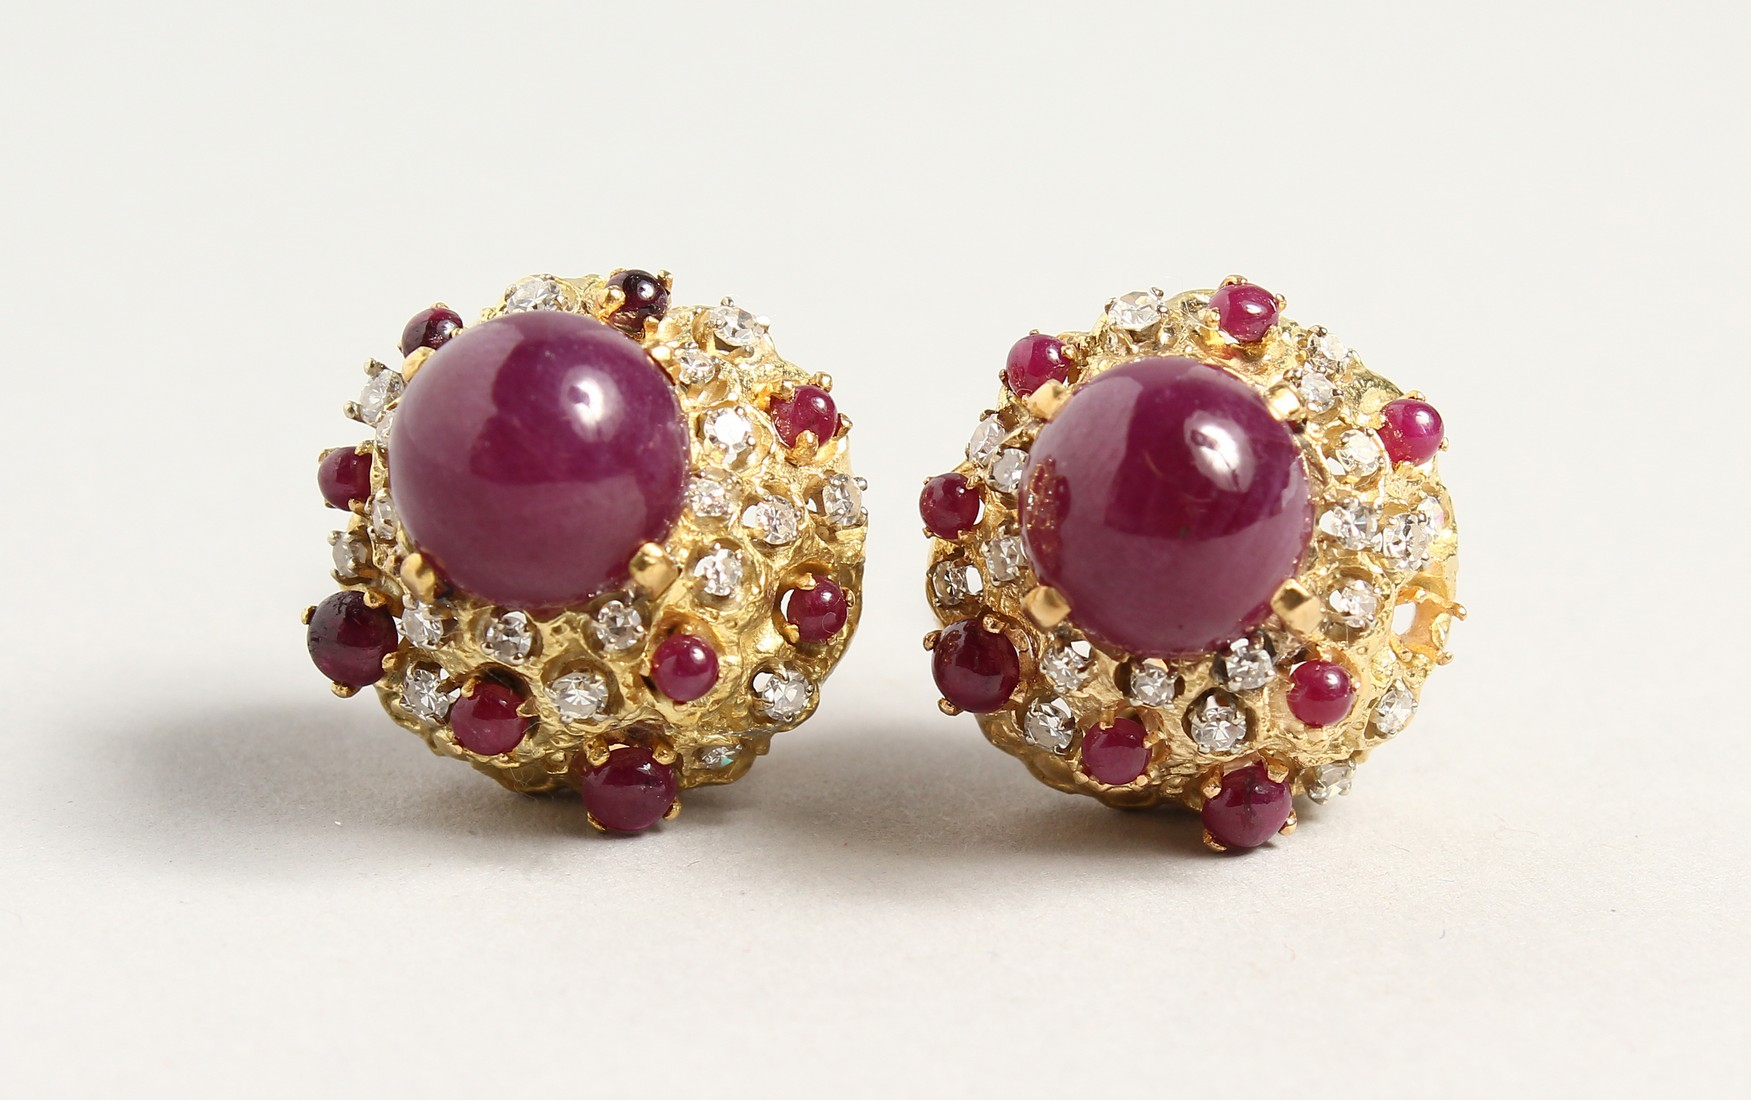 A SUPERB PAIR OF 18CT GOLD CARBOUCHON RUBY AND DIAMOND CLIP EARRINGS.